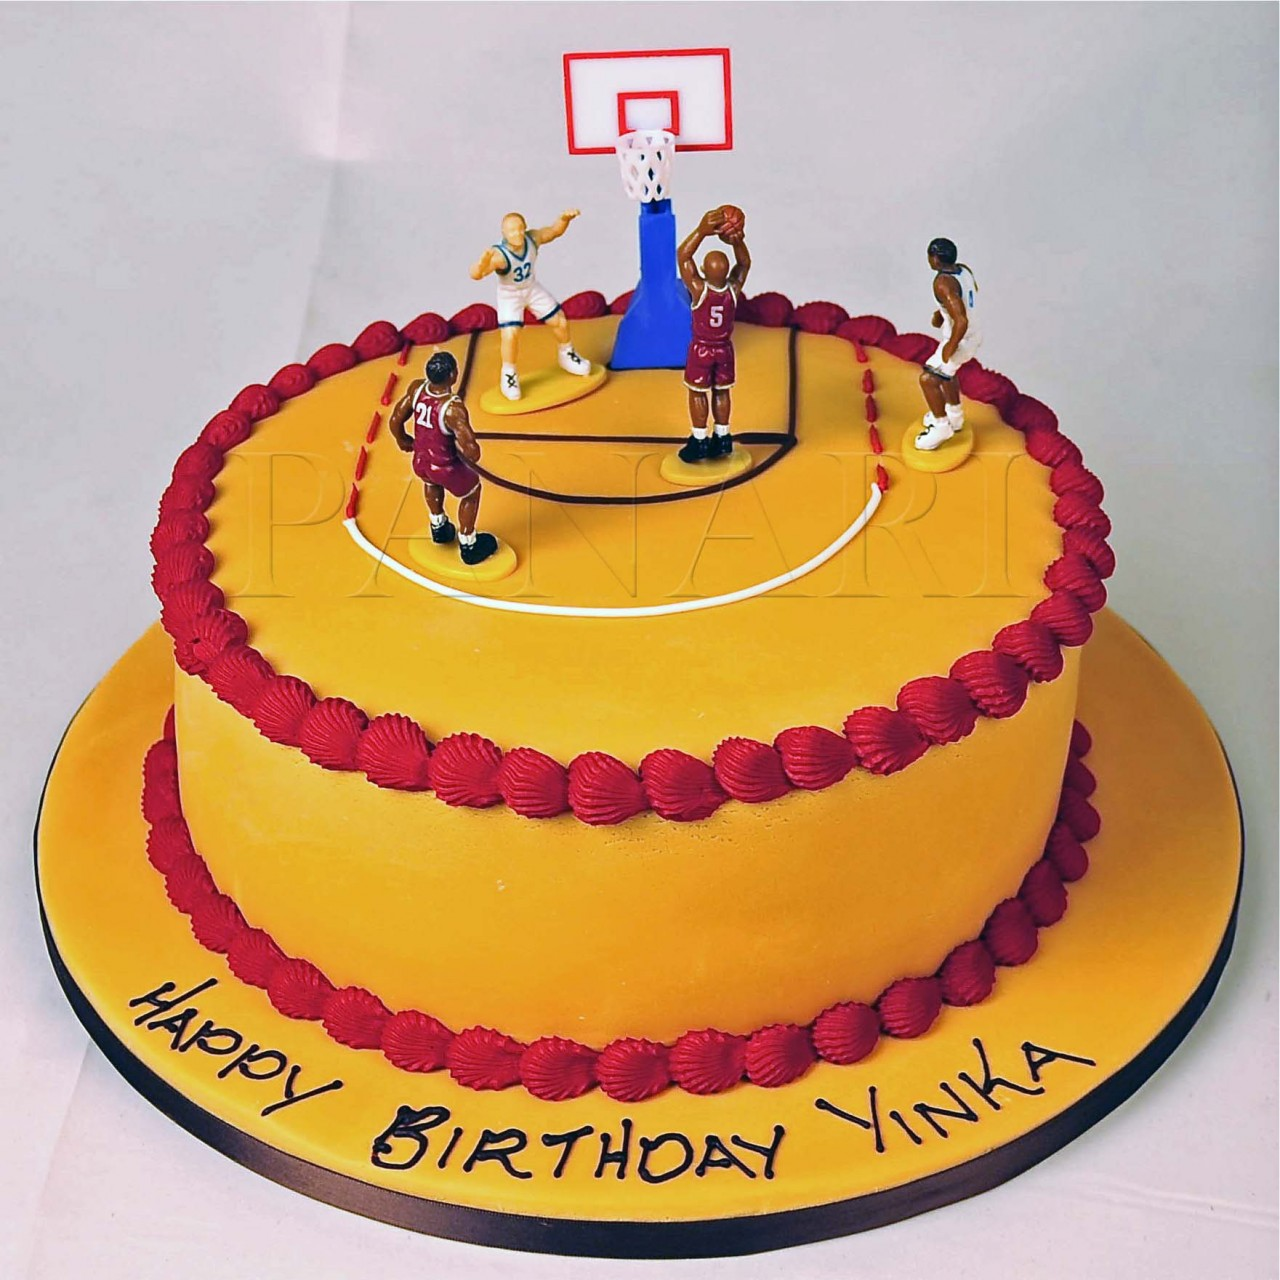 Surprising Basketball Cakes Decoration Ideas Little Birthday Cakes Funny Birthday Cards Online Aeocydamsfinfo